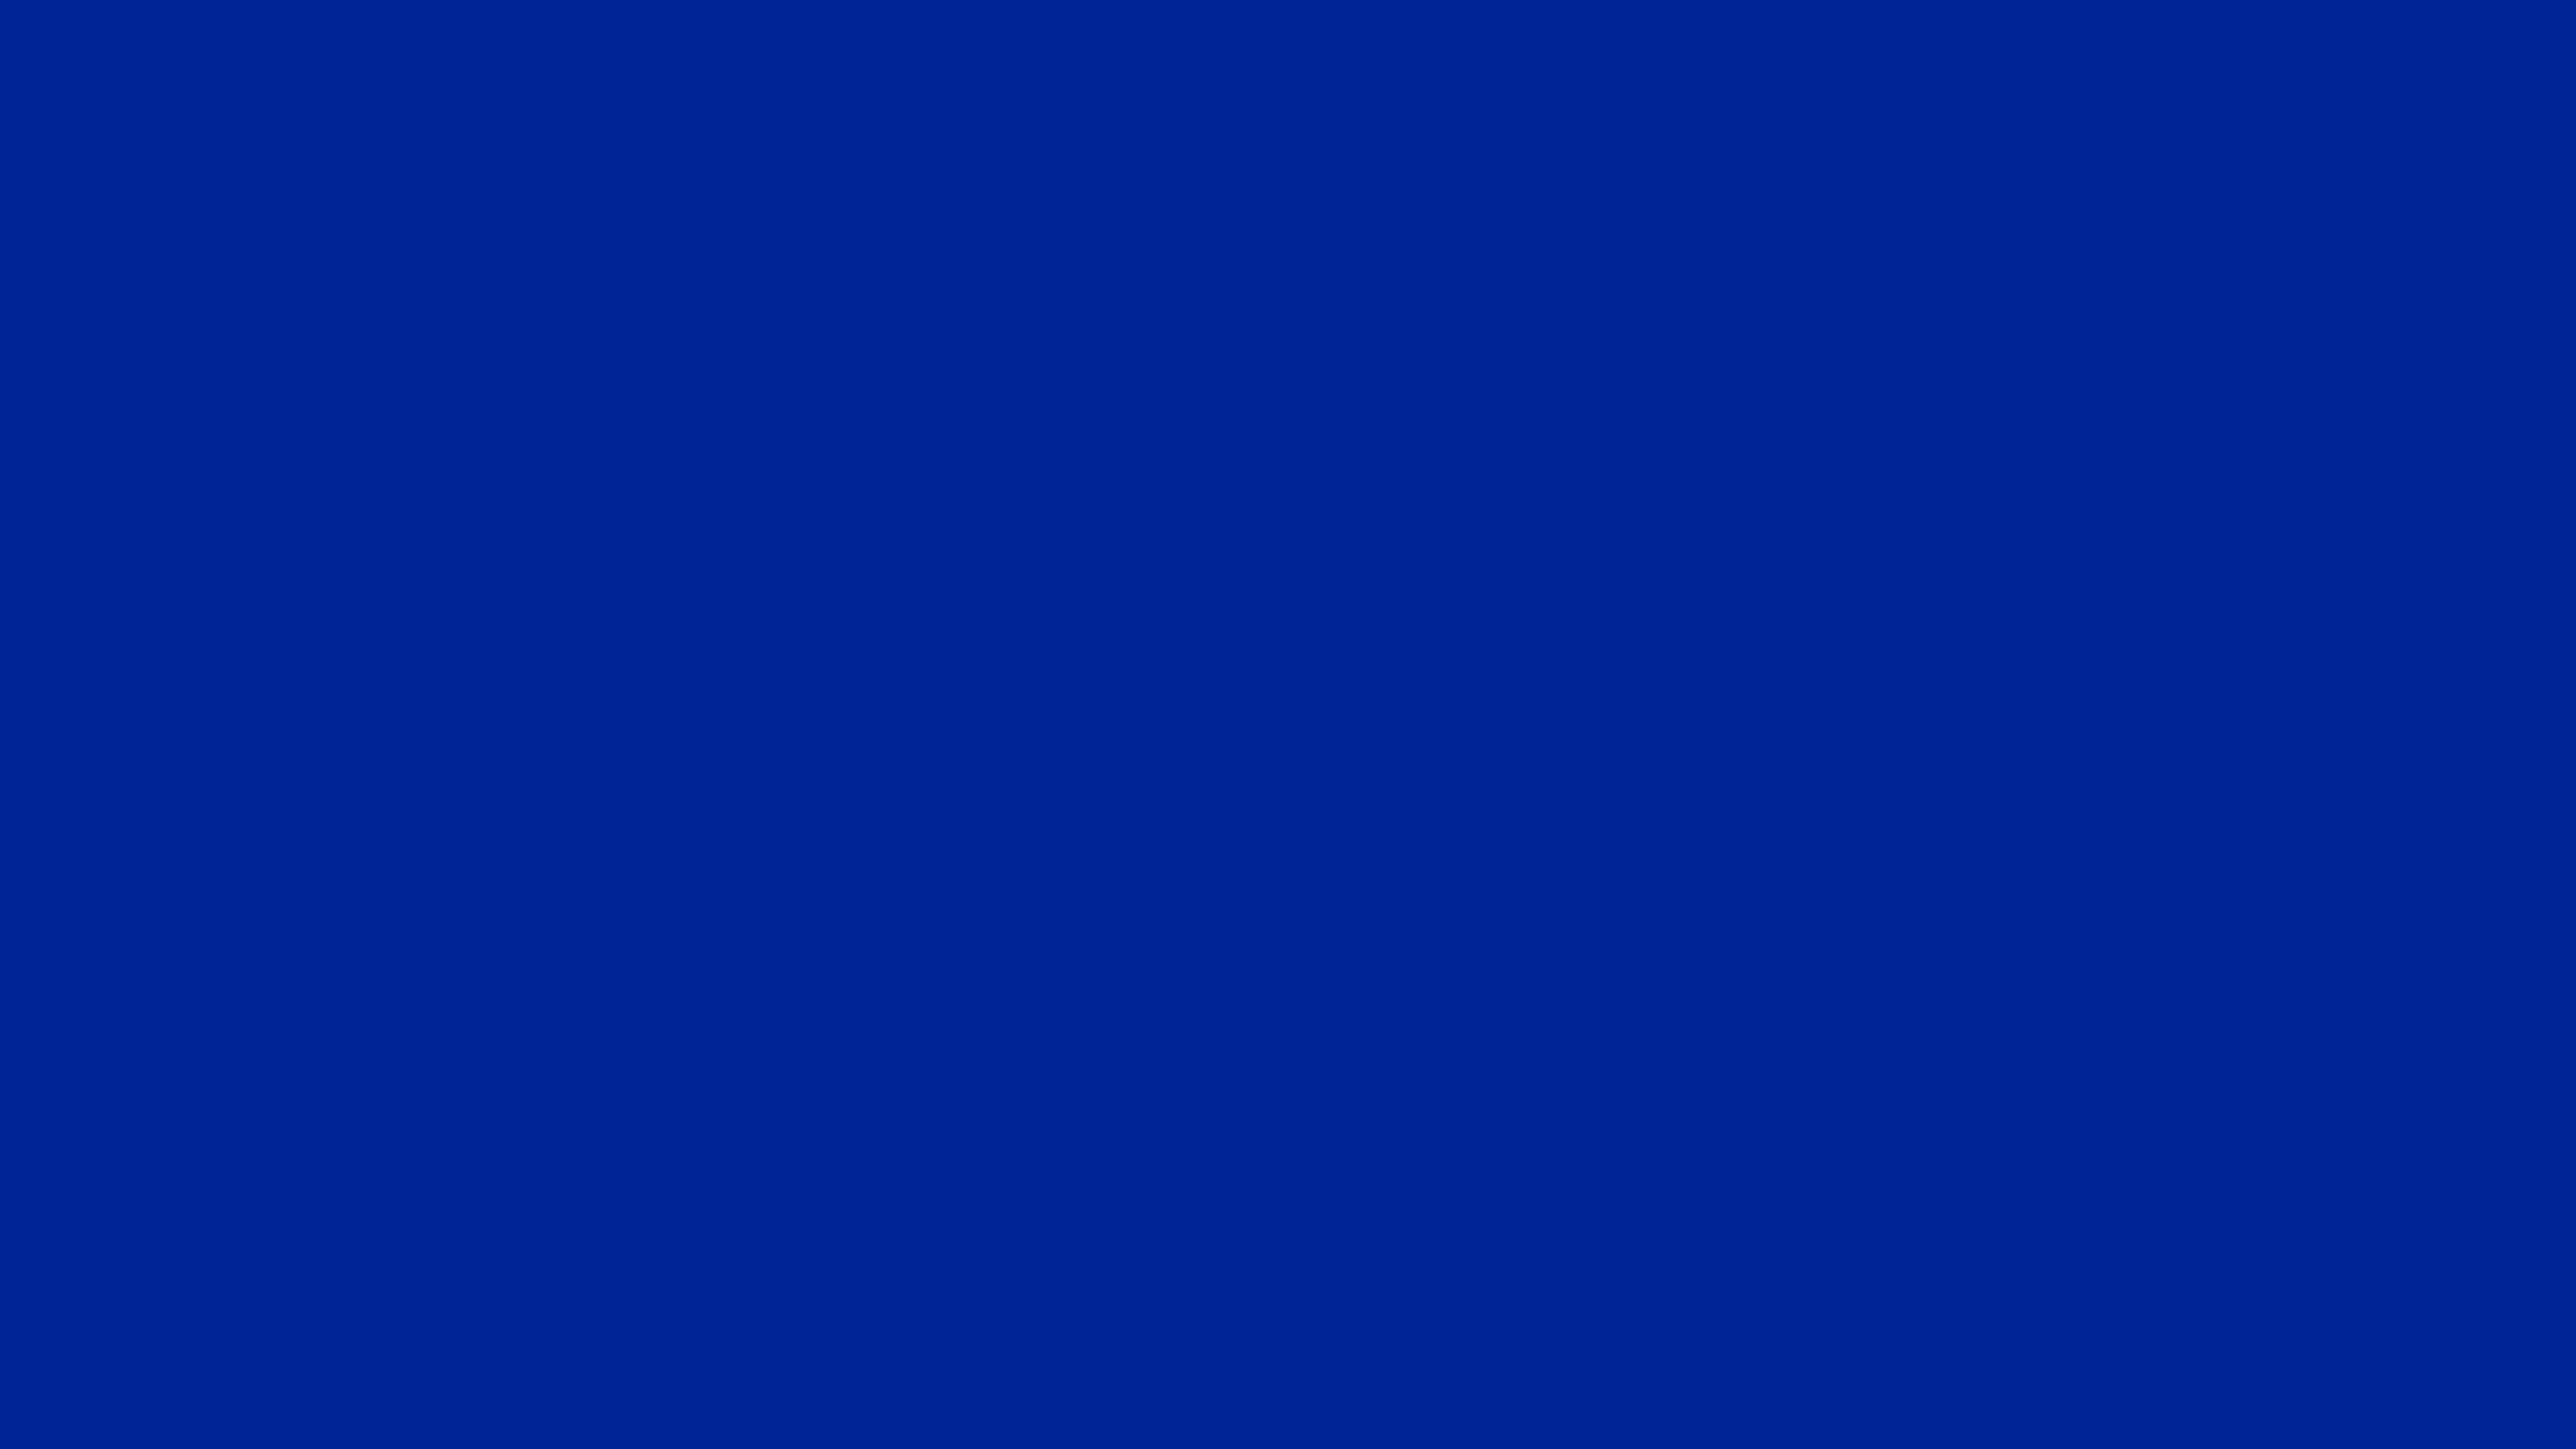 5120x2880 Imperial Blue Solid Color Background